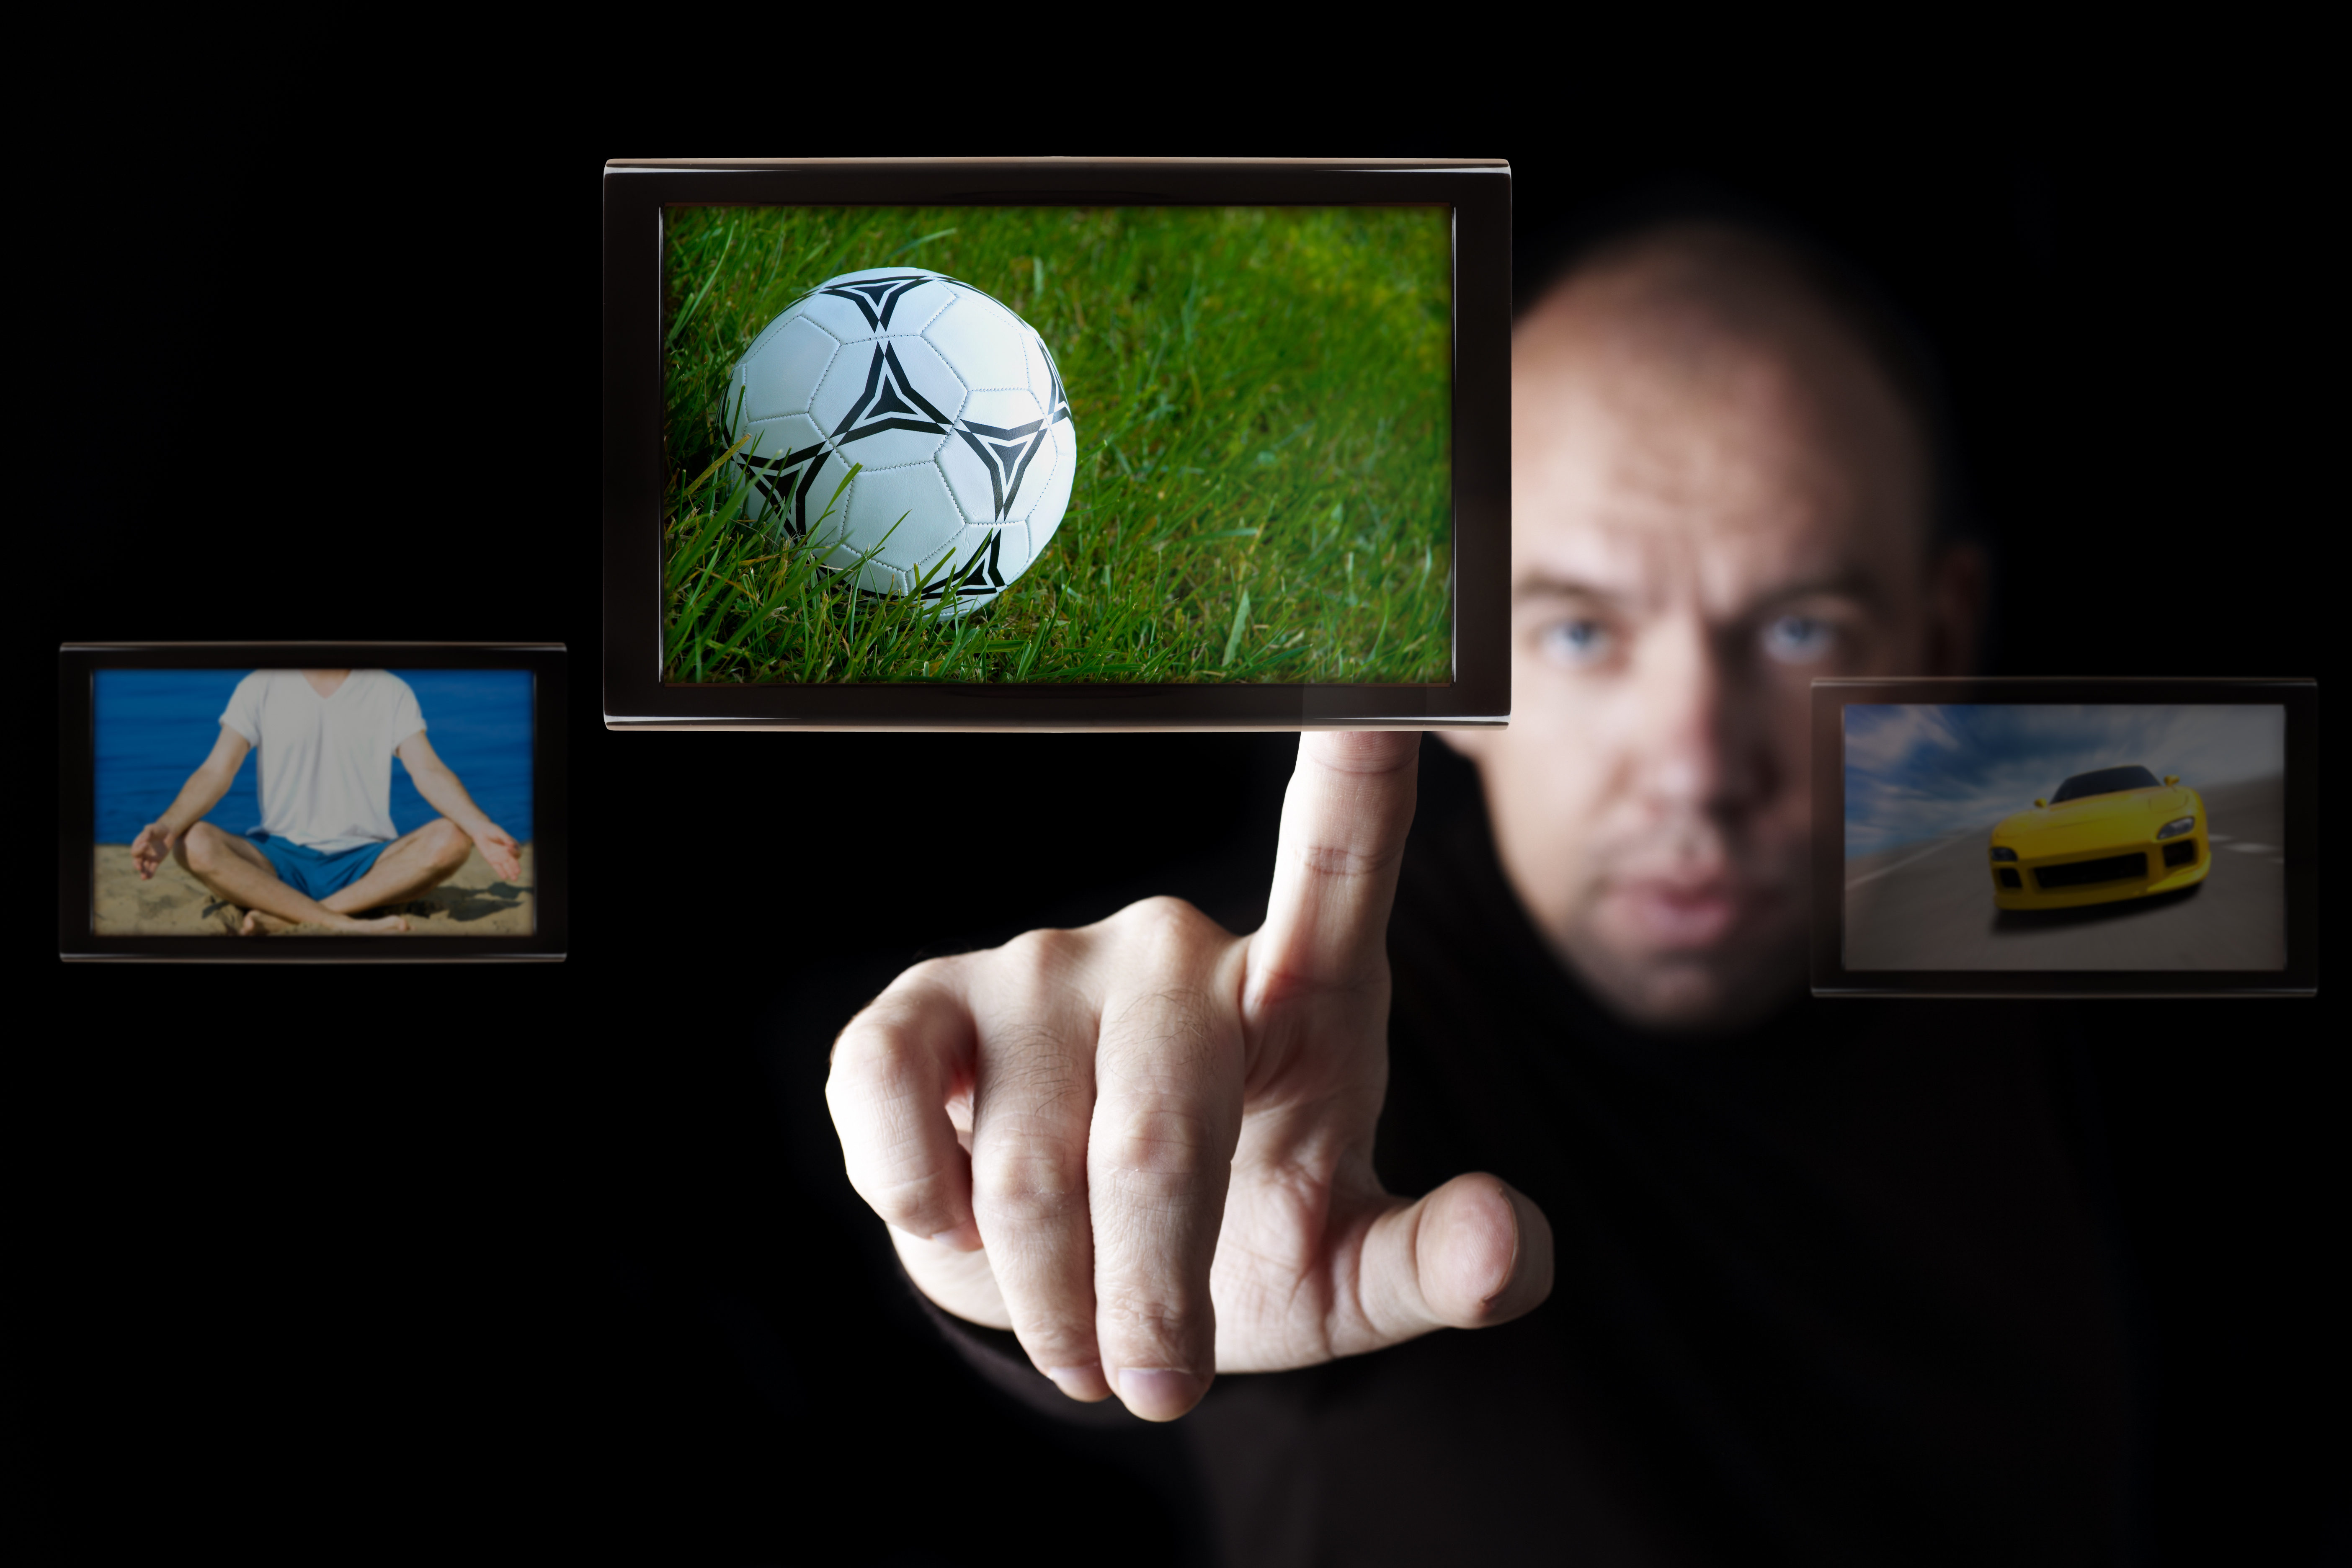 internet TV broadcasting